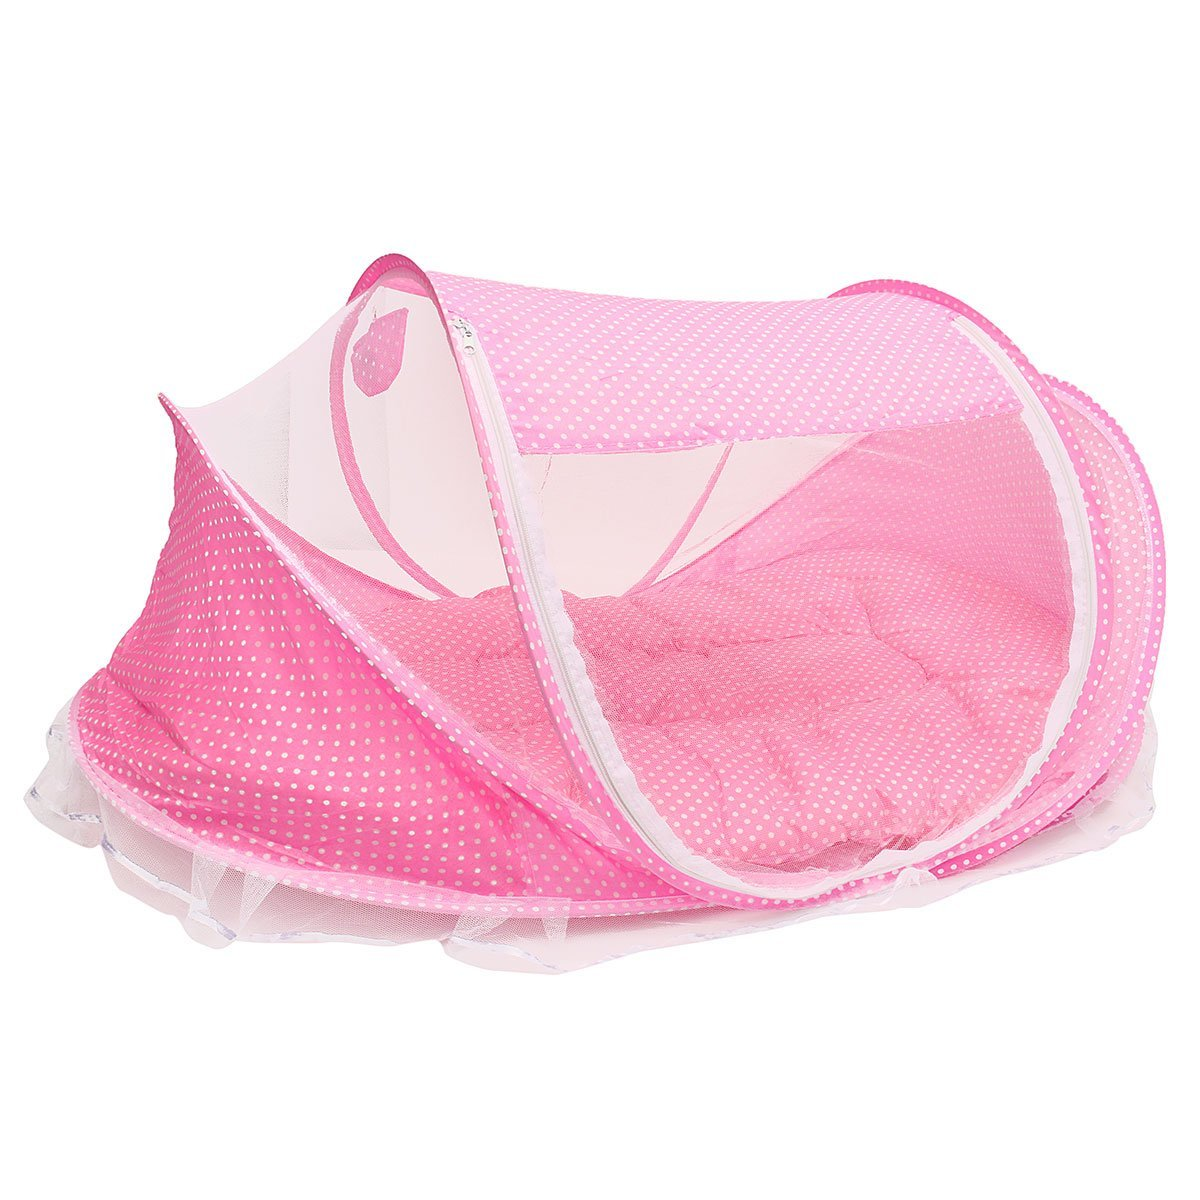 Picture of: Portable Toddler Bed Cot Travel Kids Camping Folding New Baby Child Regalo Pink New Guarantee By Skroutz It Comes Only With Skroutz Unique Ebook Talkingbread Co Il